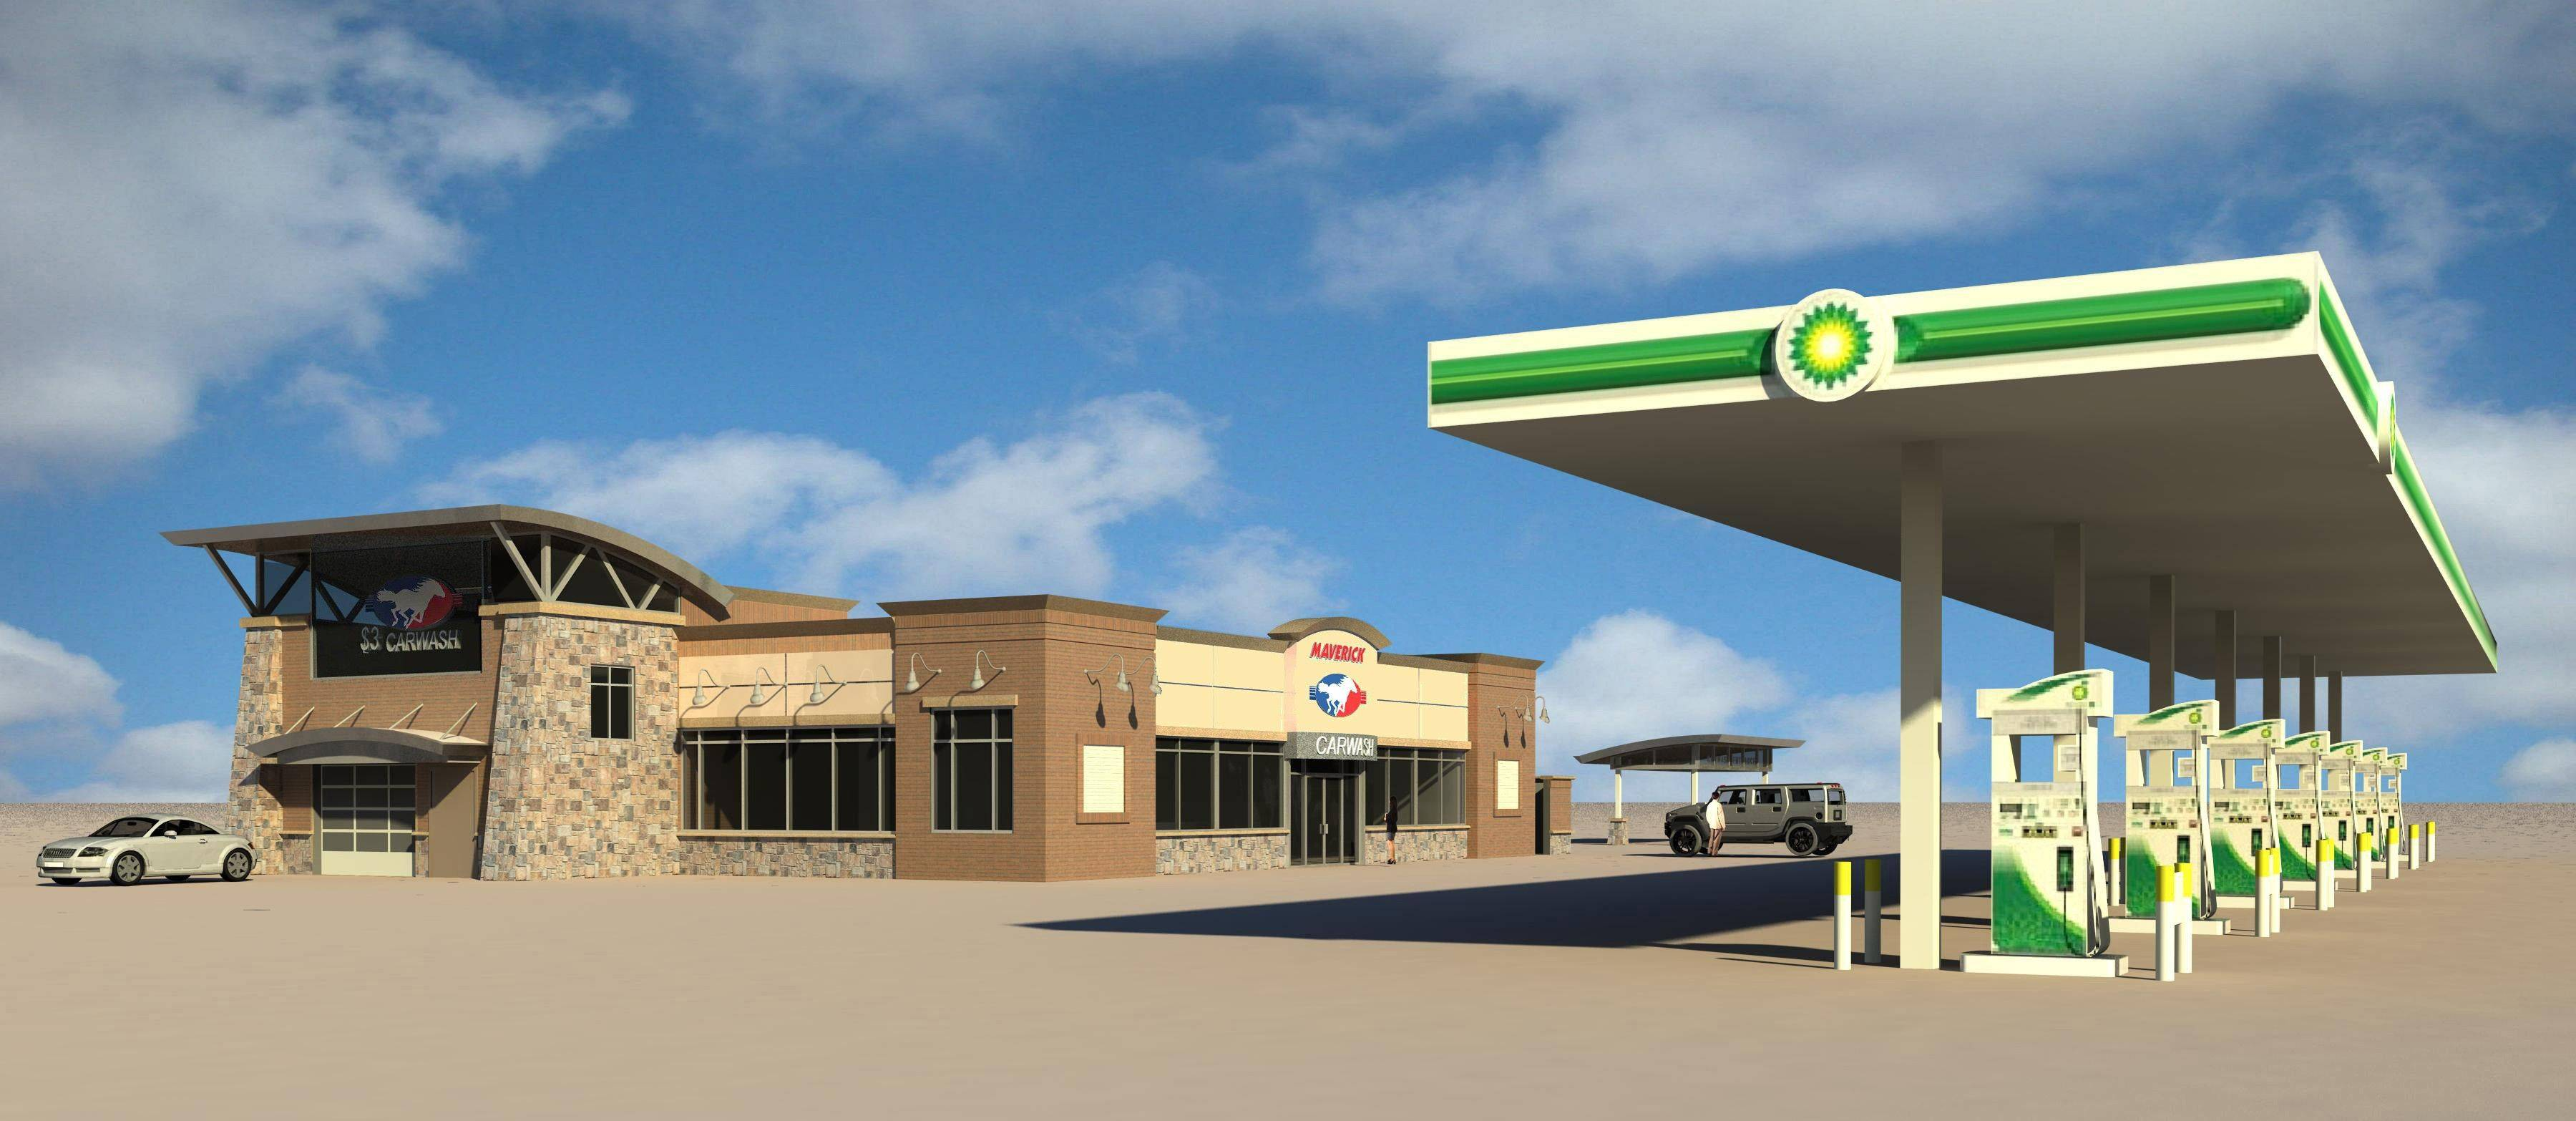 The Arlington Heights village board Tuesday approved this design of the new BP gas station, convenience store and Maverick Car Wash for the northwest corner of Arlington Heights and Algonquin roads.